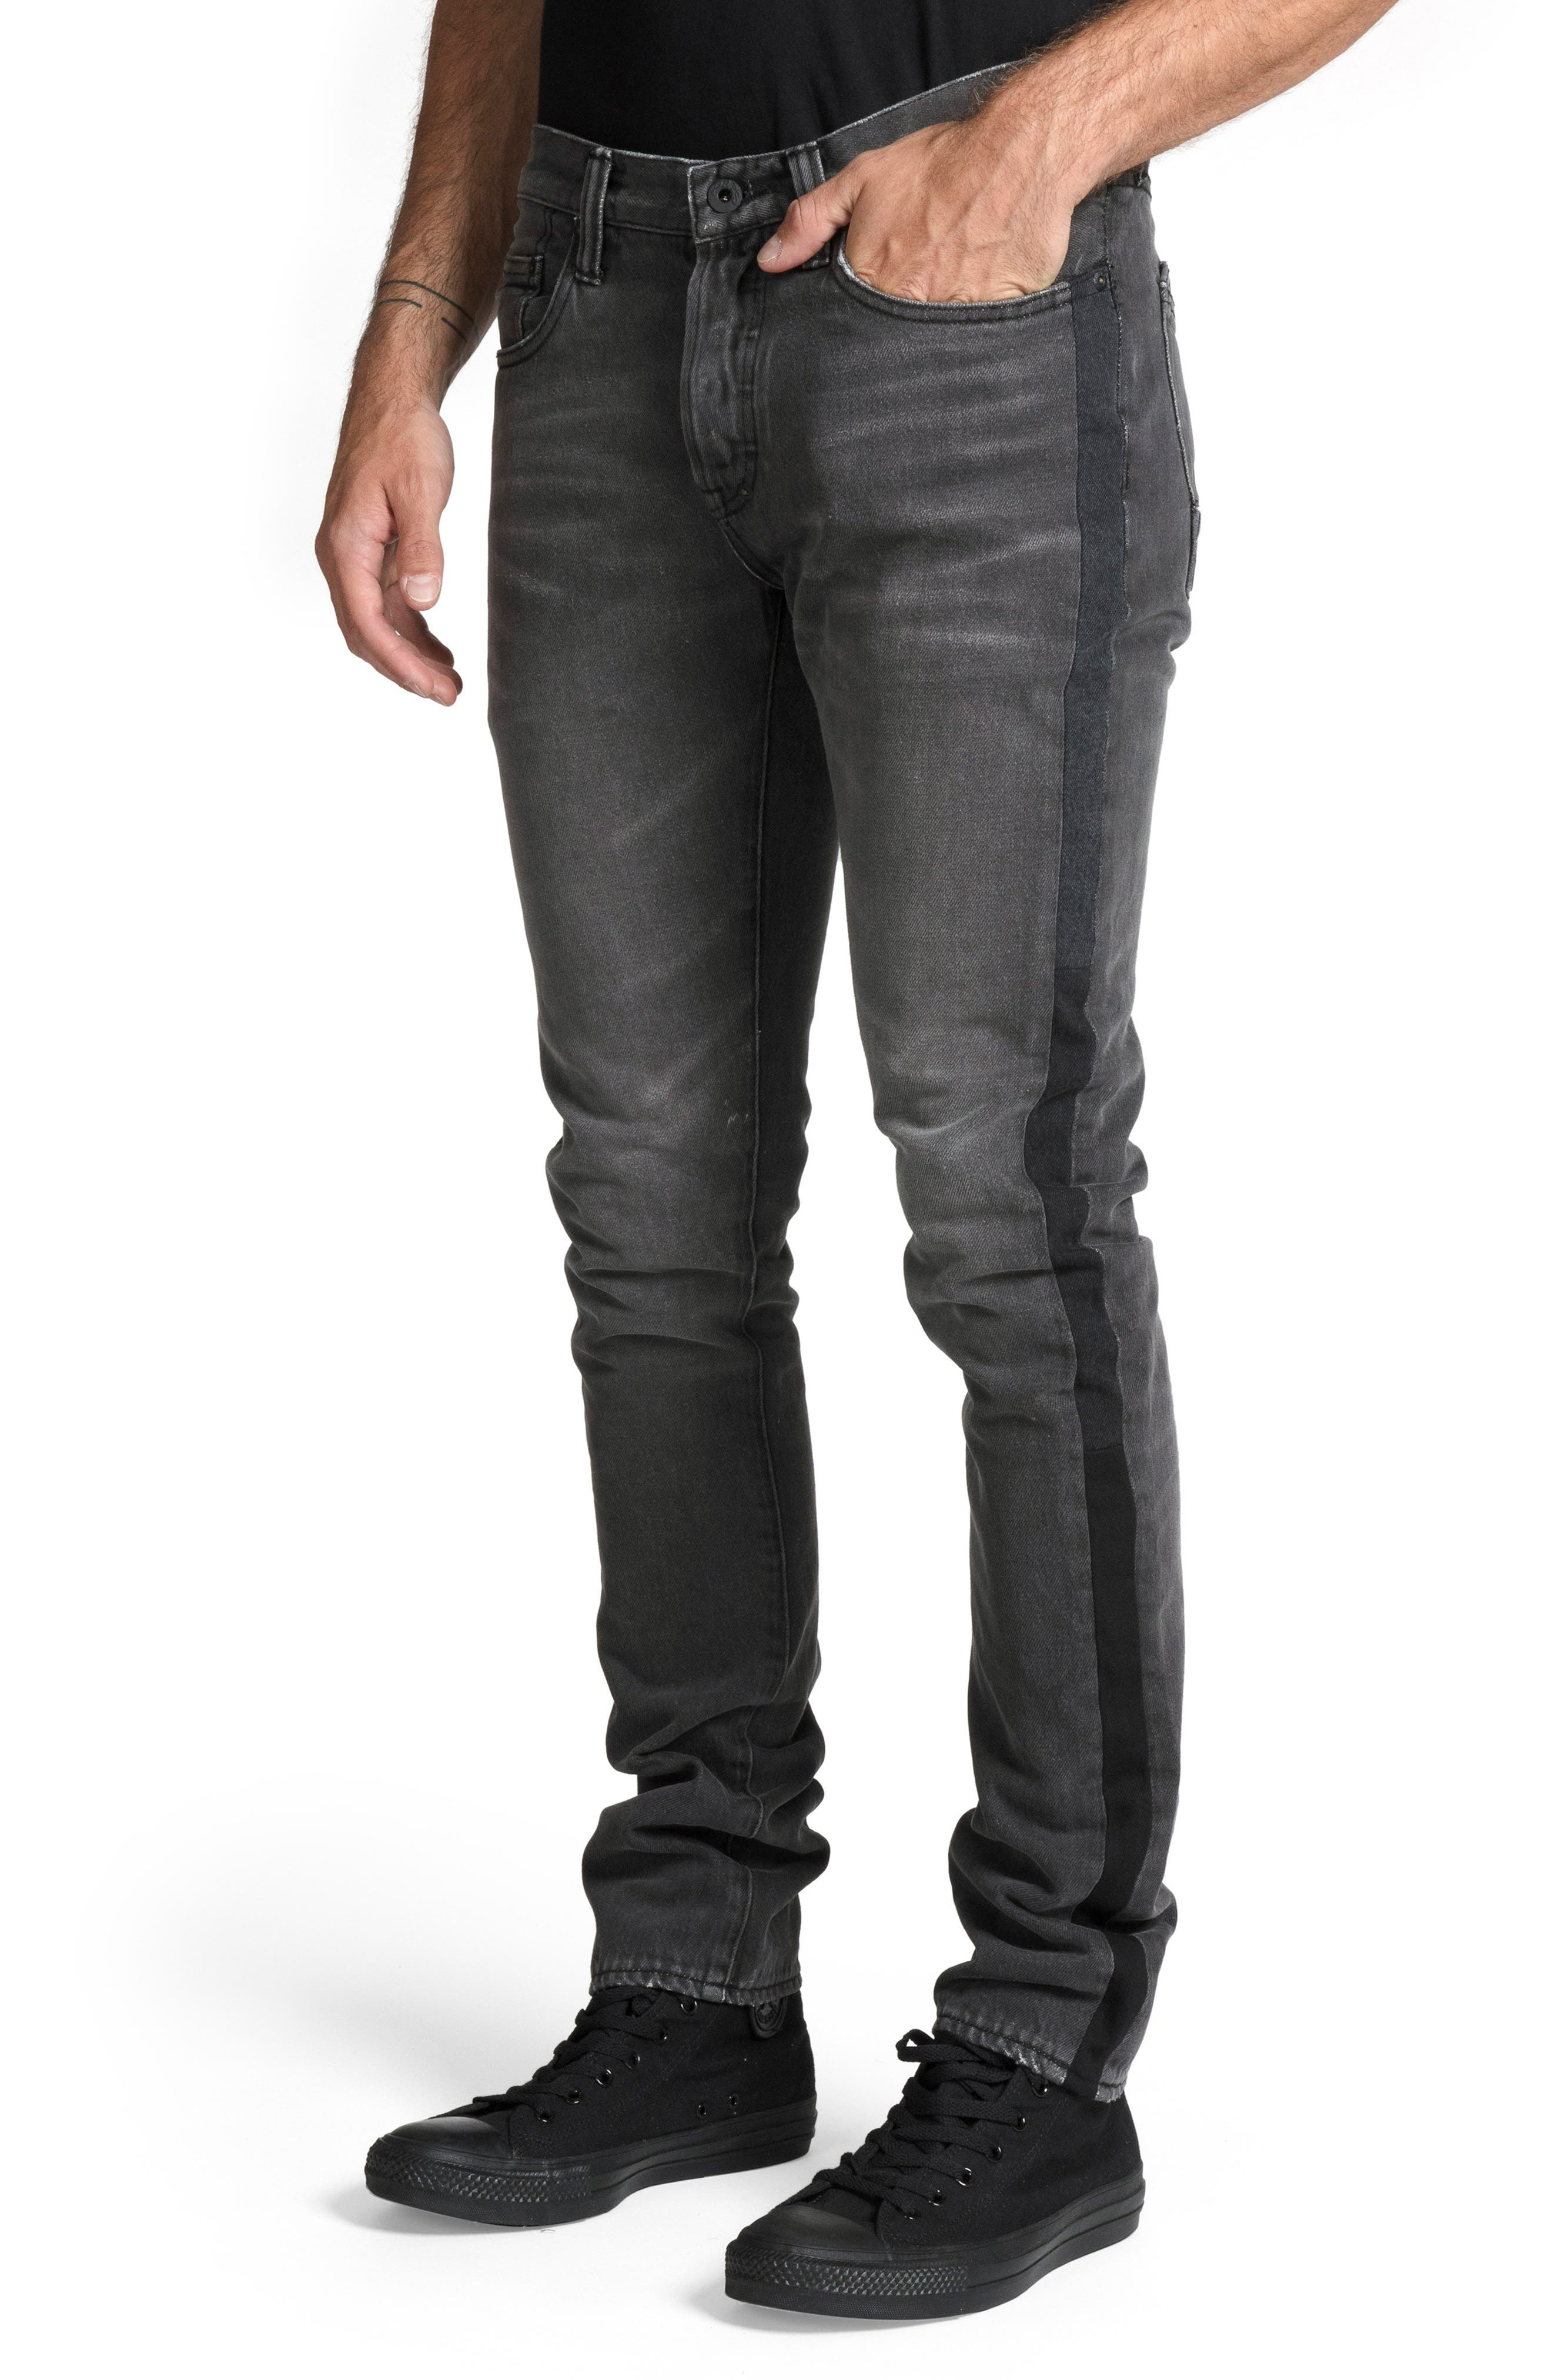 Le Sabre Slim Fit Jeans,                             Alternate thumbnail 3, color,                             ABHORRENT